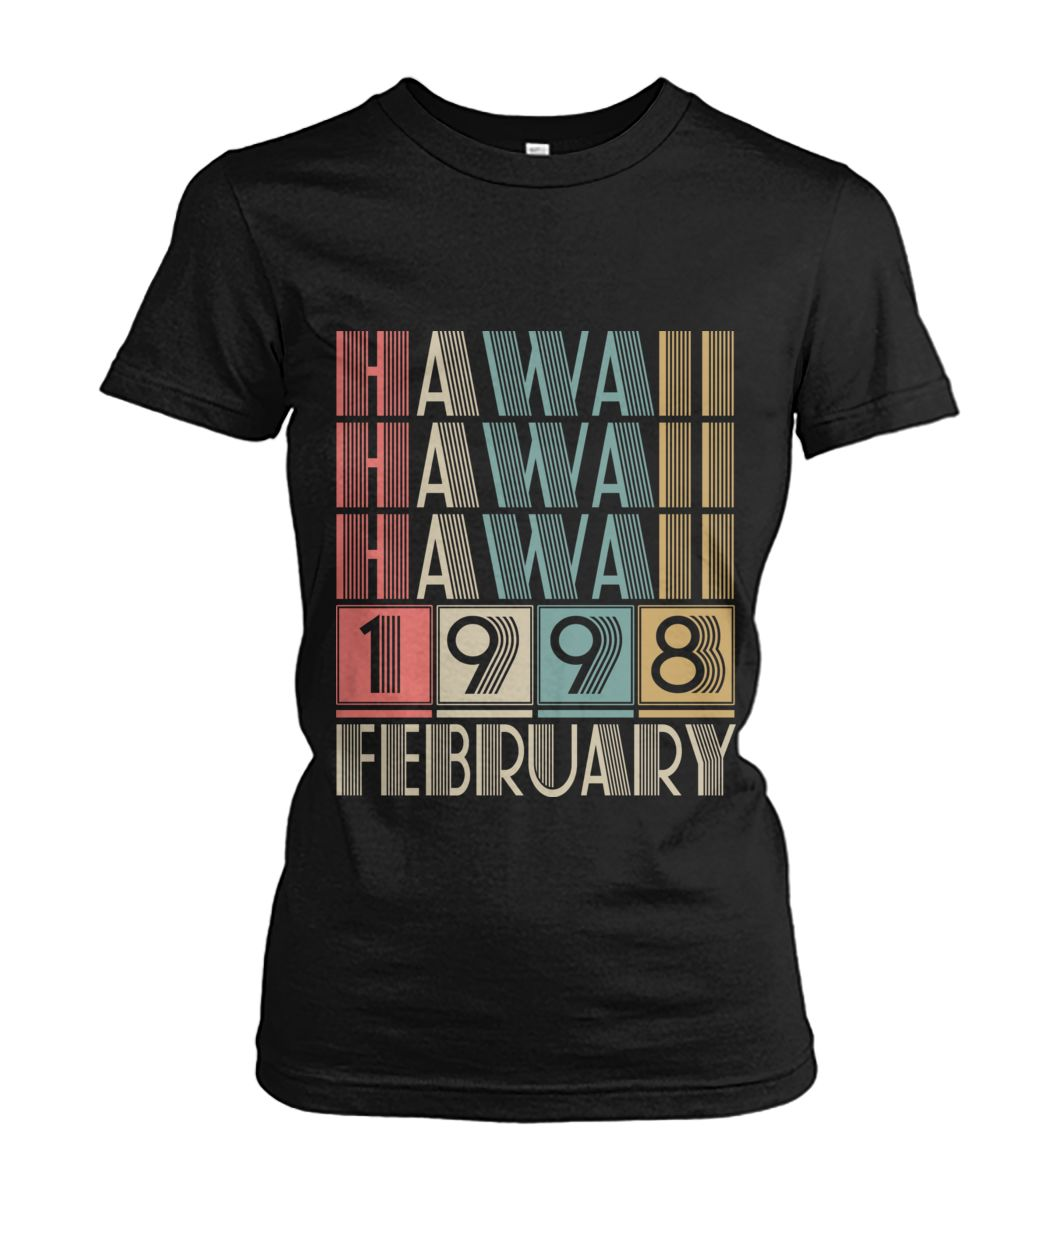 Born in Hawaii in February 1998 t shirt-Short Sleeves - TEEHOT.COM